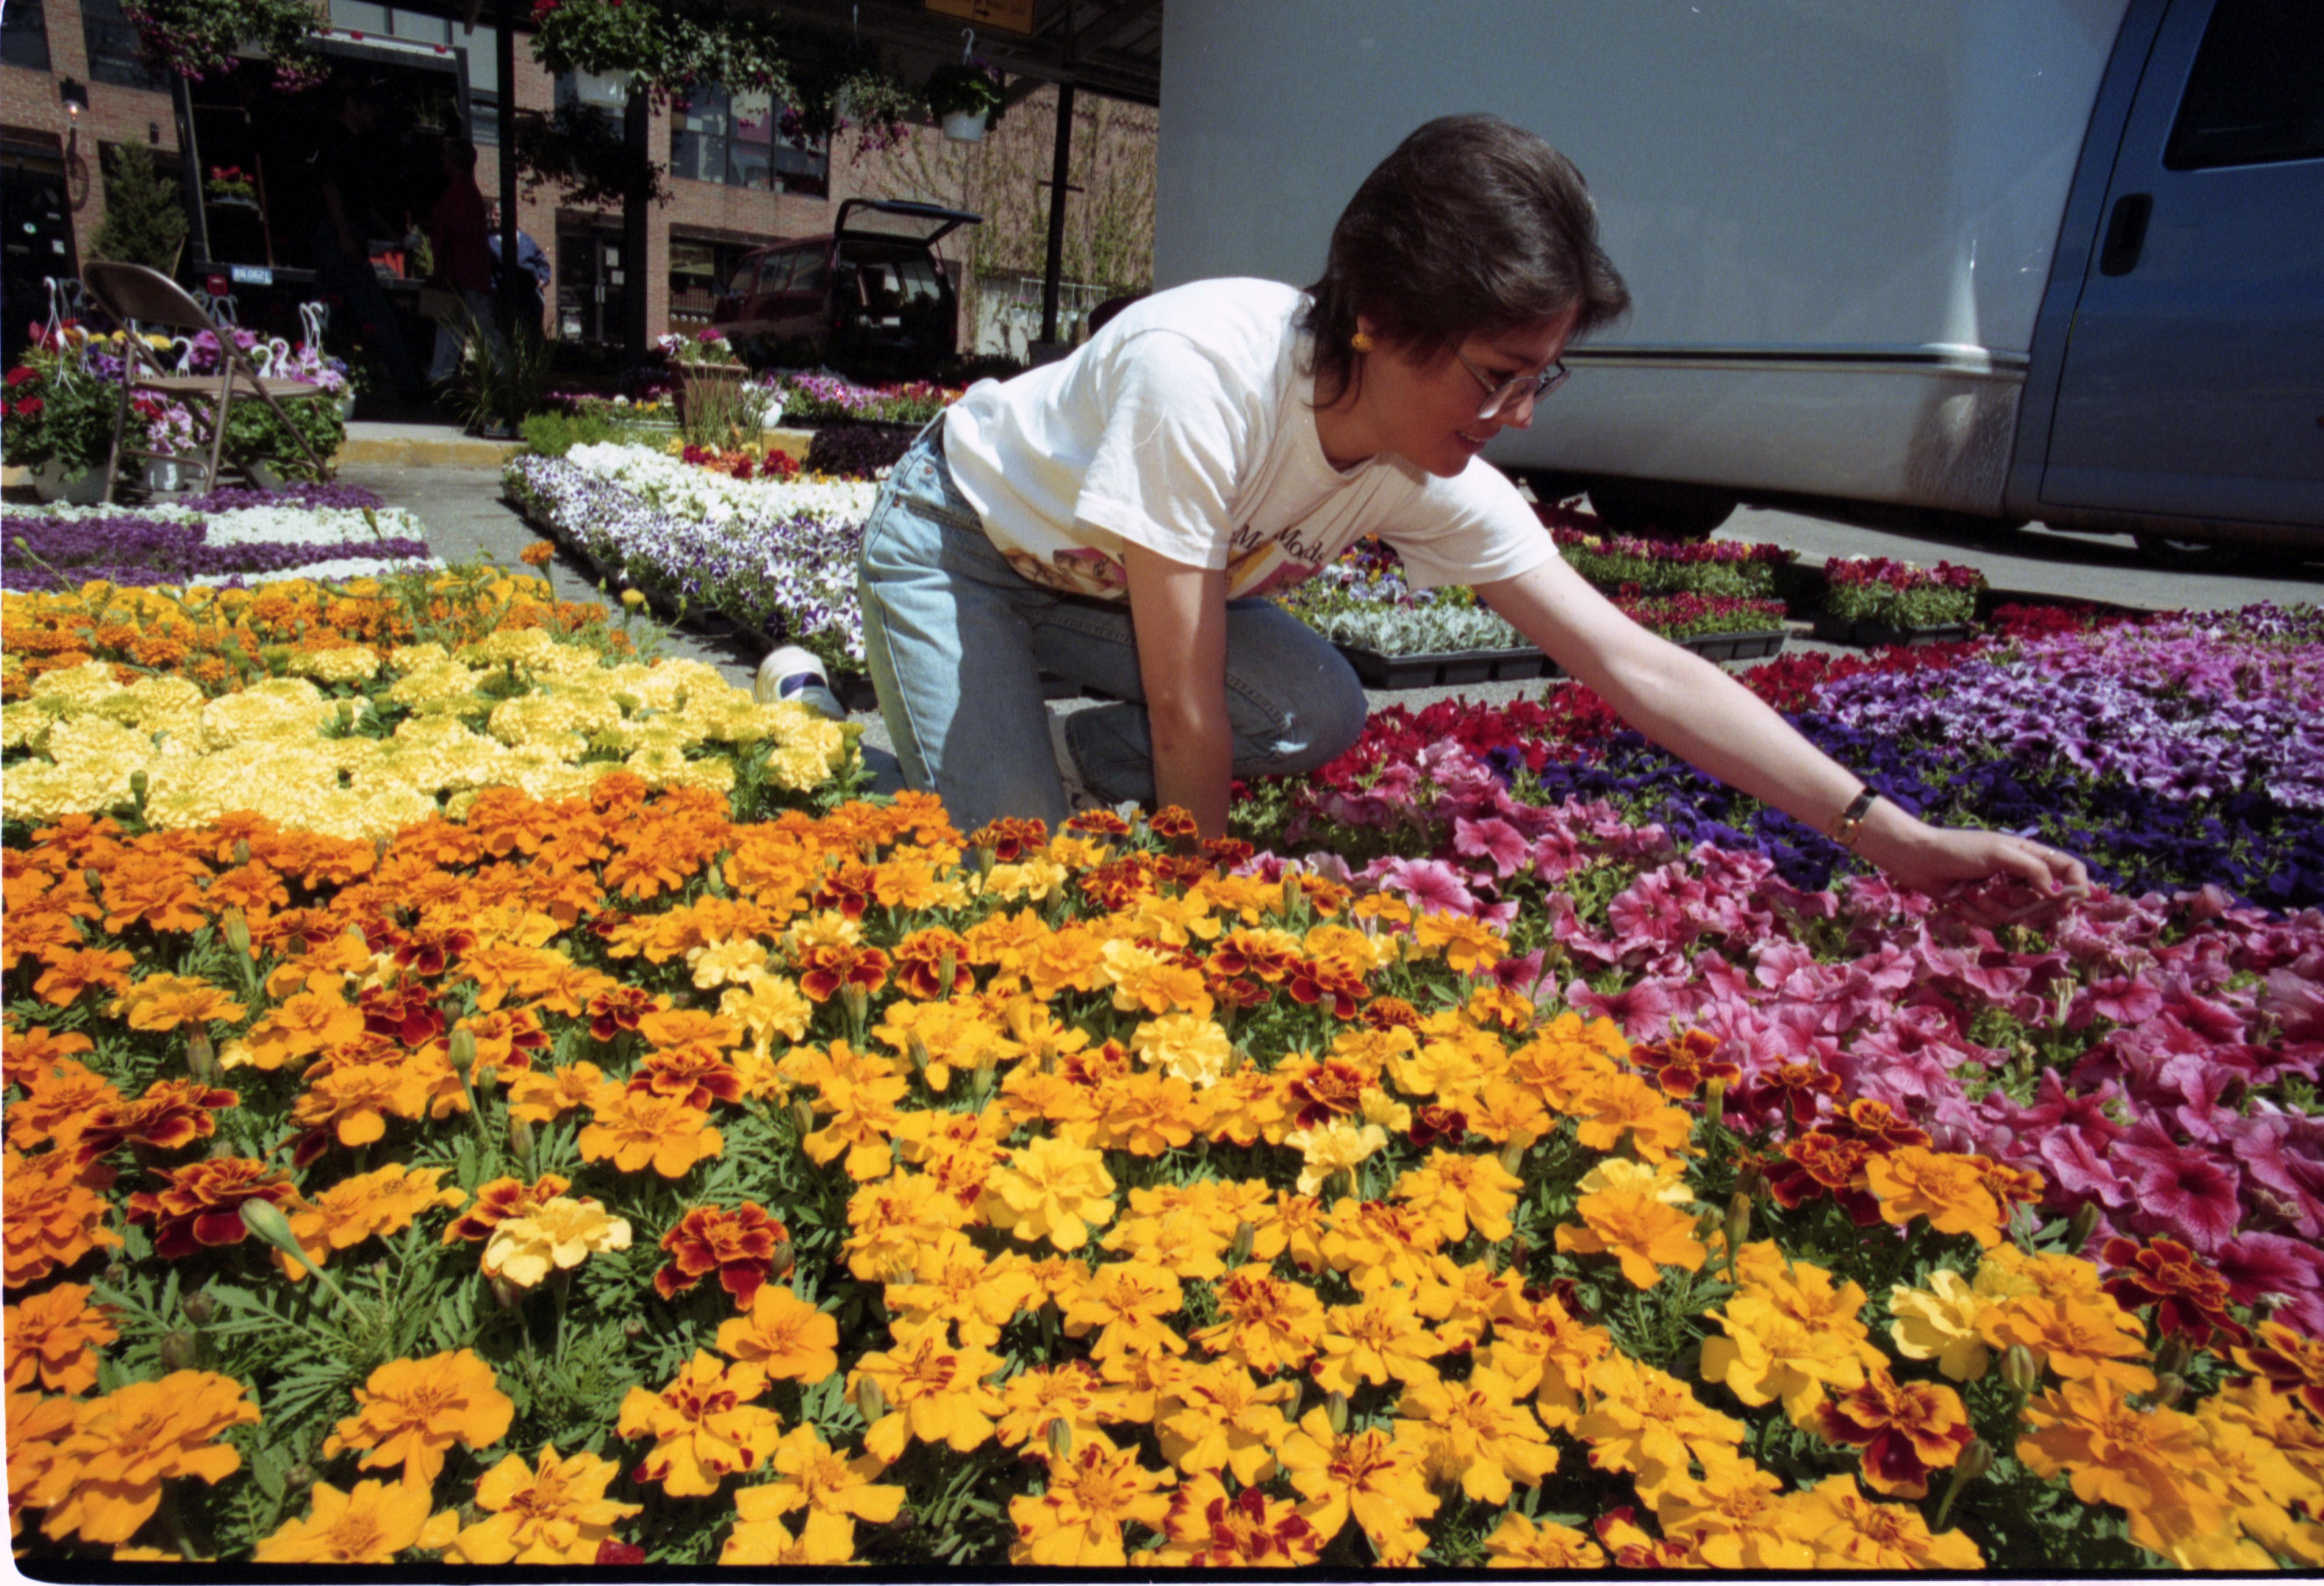 Flowers For Sale At The Farmer's Market, May 1997 image